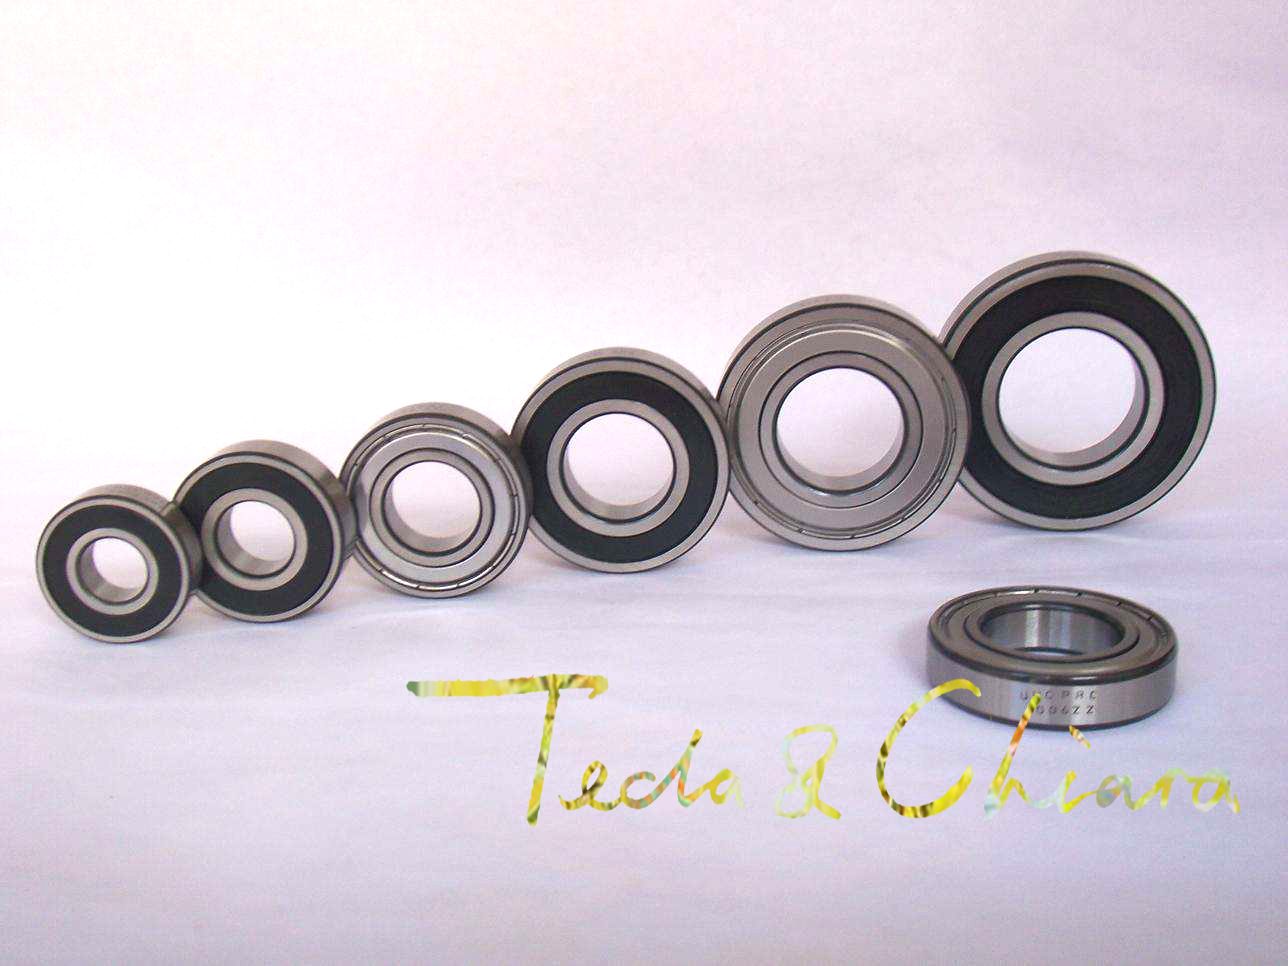 MR74 674ZZ 674RS MR74ZZ MR74RS MR74-2Z MR74Z MR74-2RS 674 674Z ZZ RS RZ 2RZ Deep Groove Ball Bearings 4 x 7 x 2.5mm High Quality gcr15 6328 zz or 6328 2rs 140x300x62mm high precision deep groove ball bearings abec 1 p0